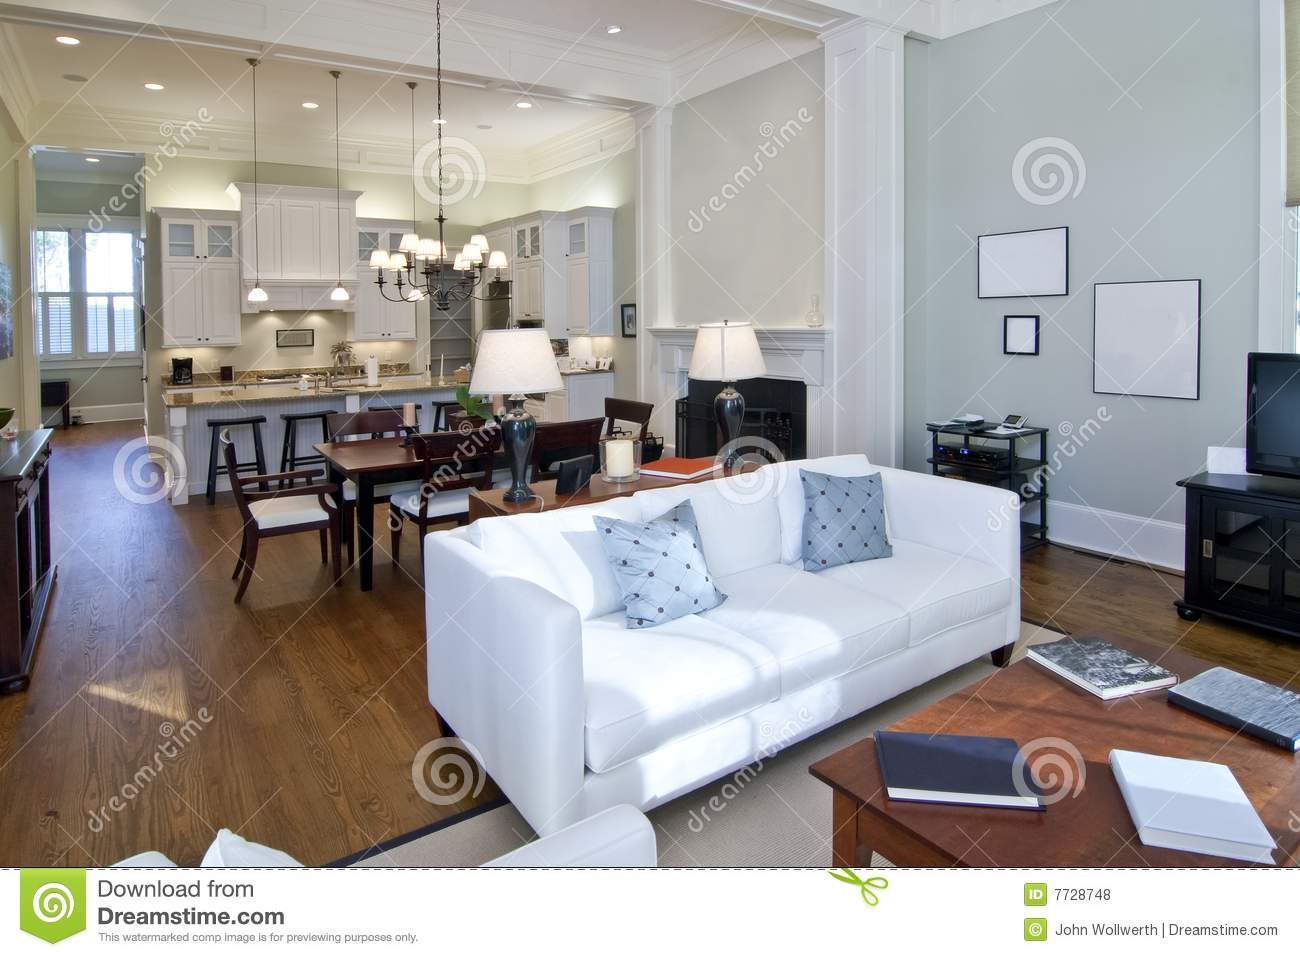 Modern Studio Apartment Royalty Free Stock Photos - Image: 7728748